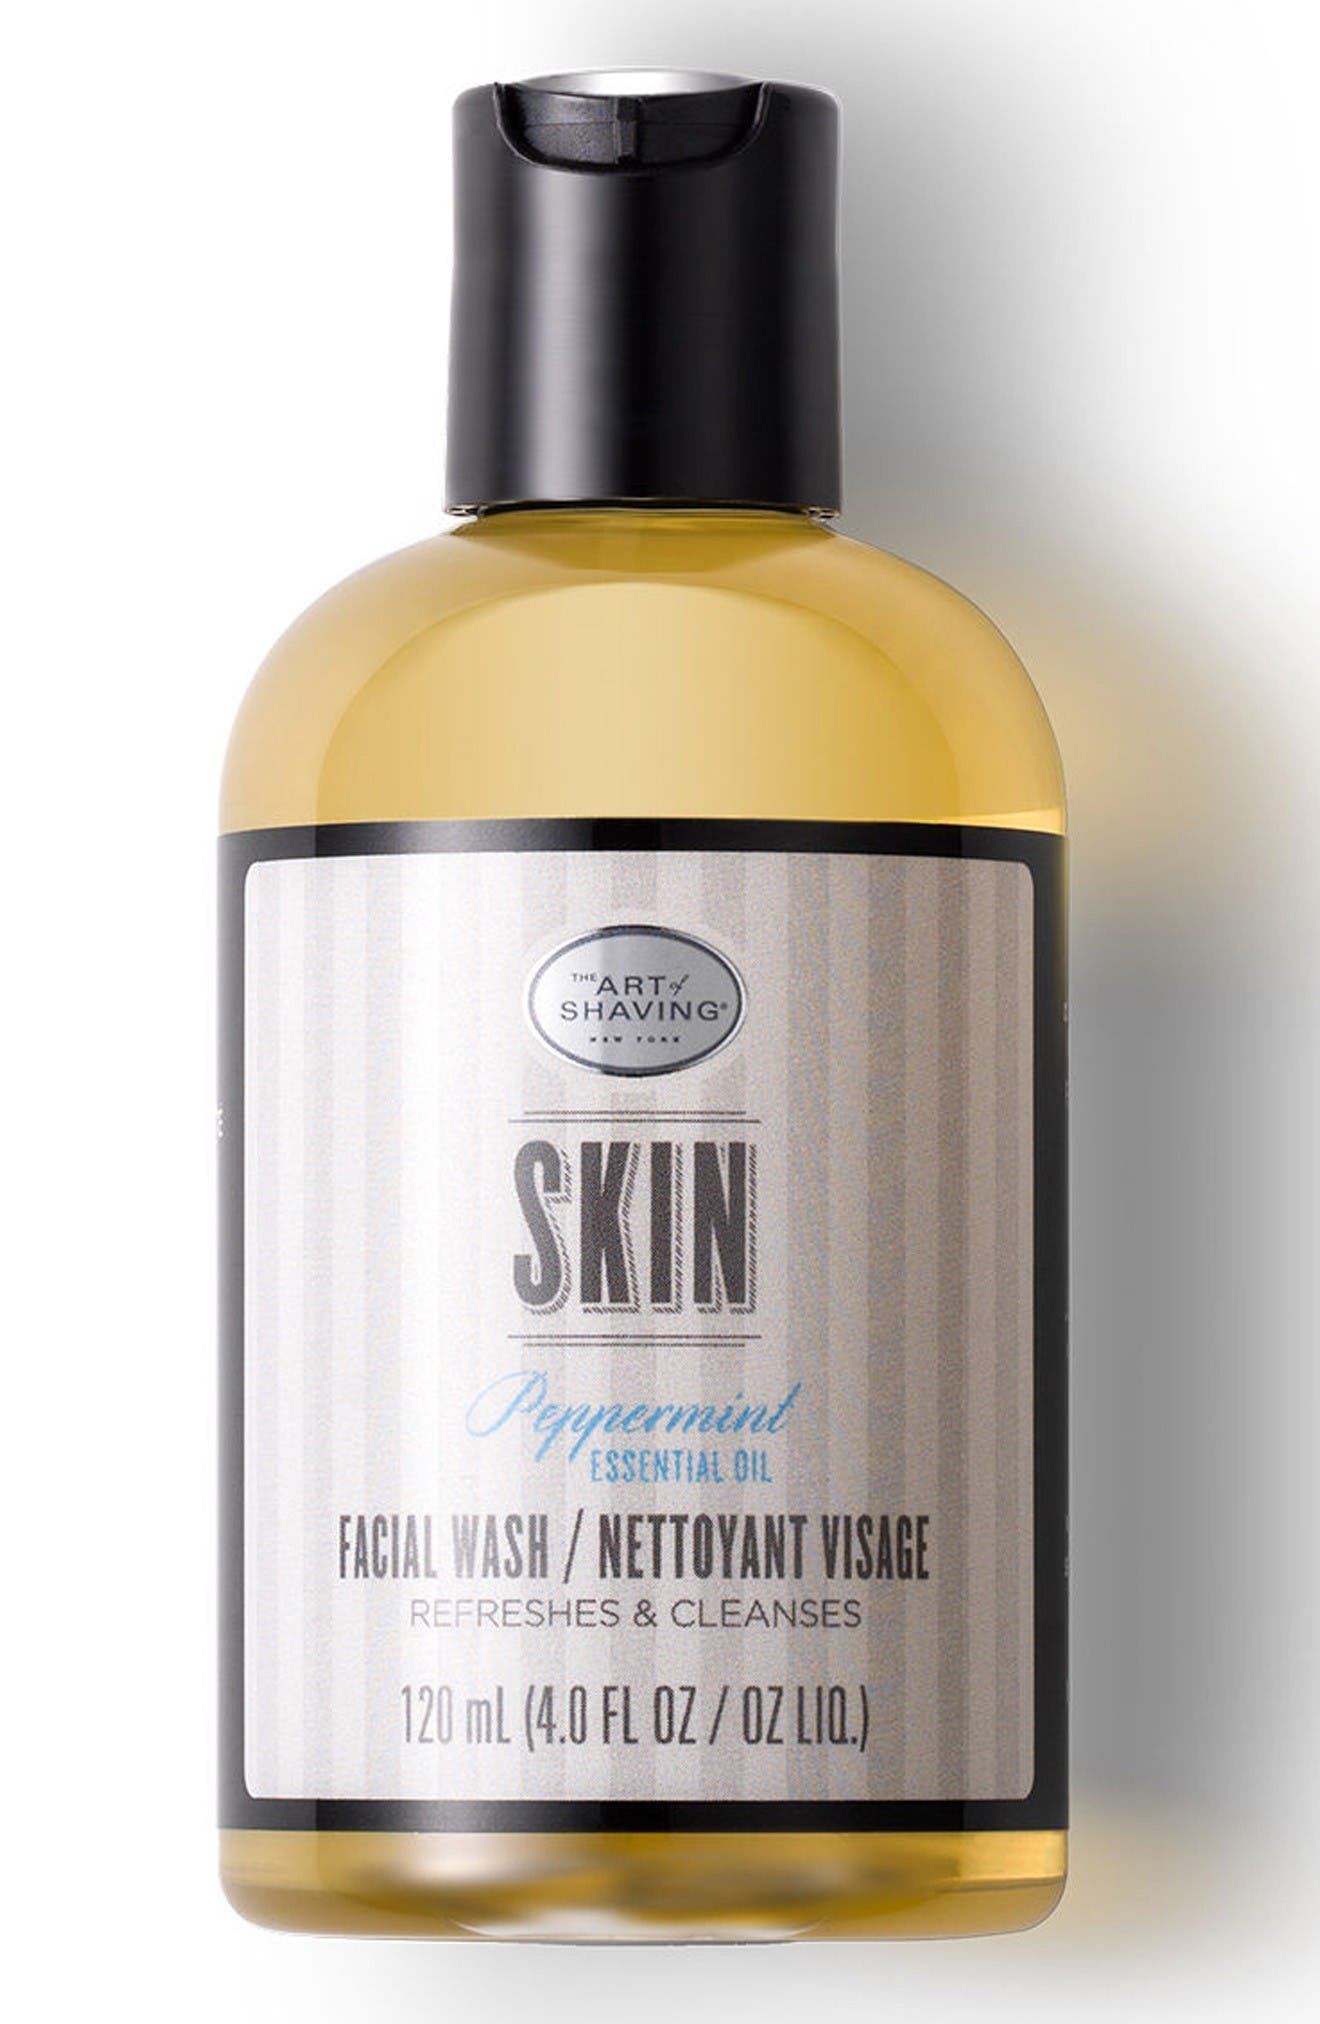 The Art of Shaving® Peppermint Facial Wash